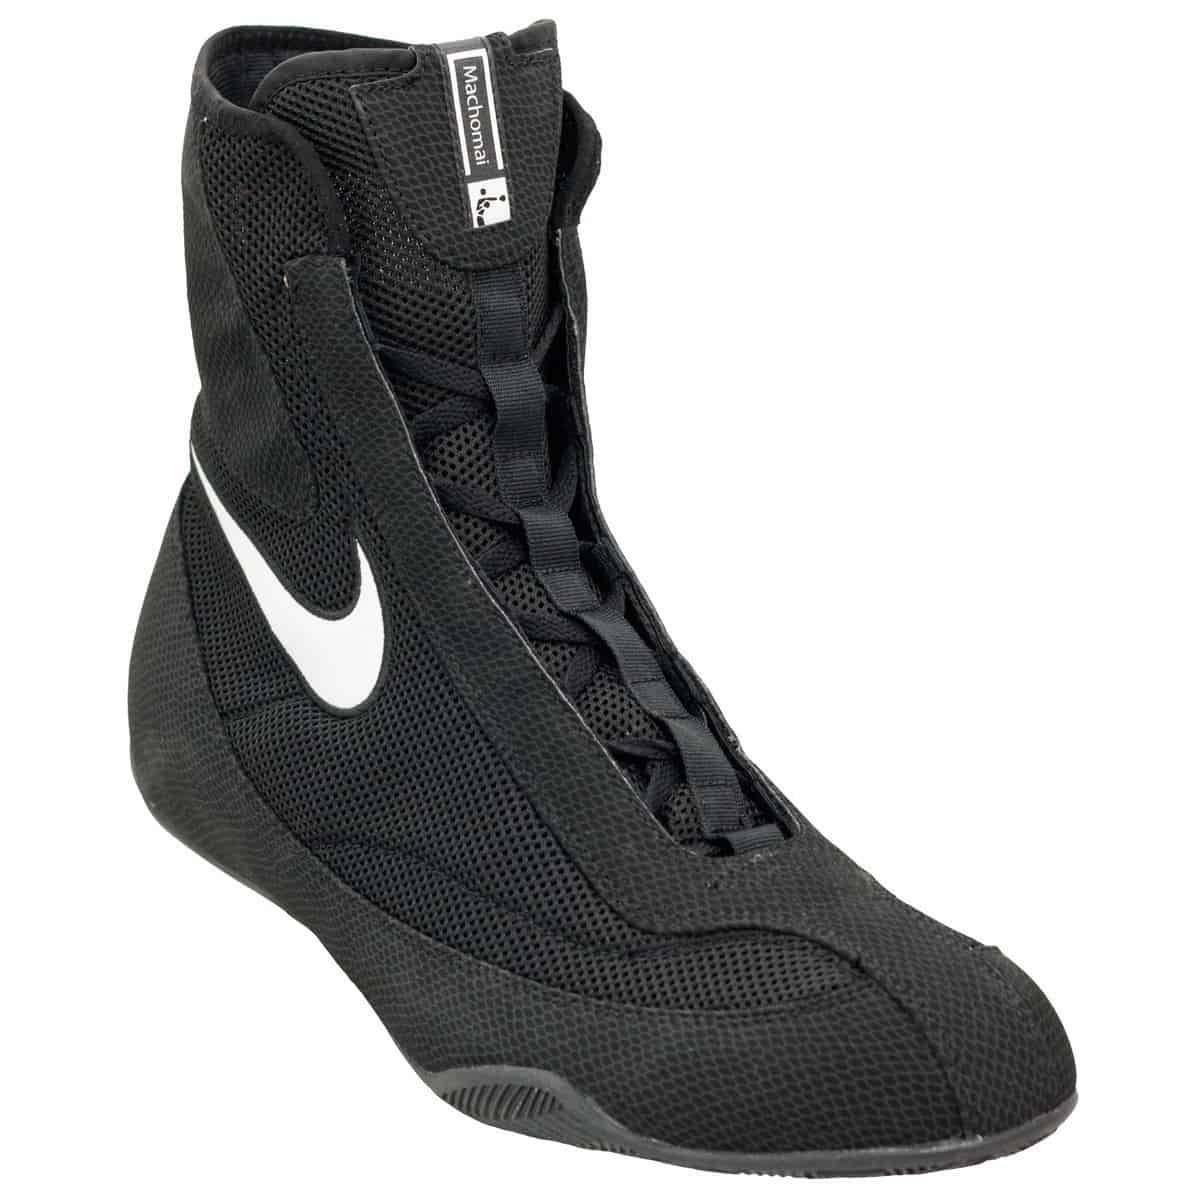 Nike High Grip Shoes